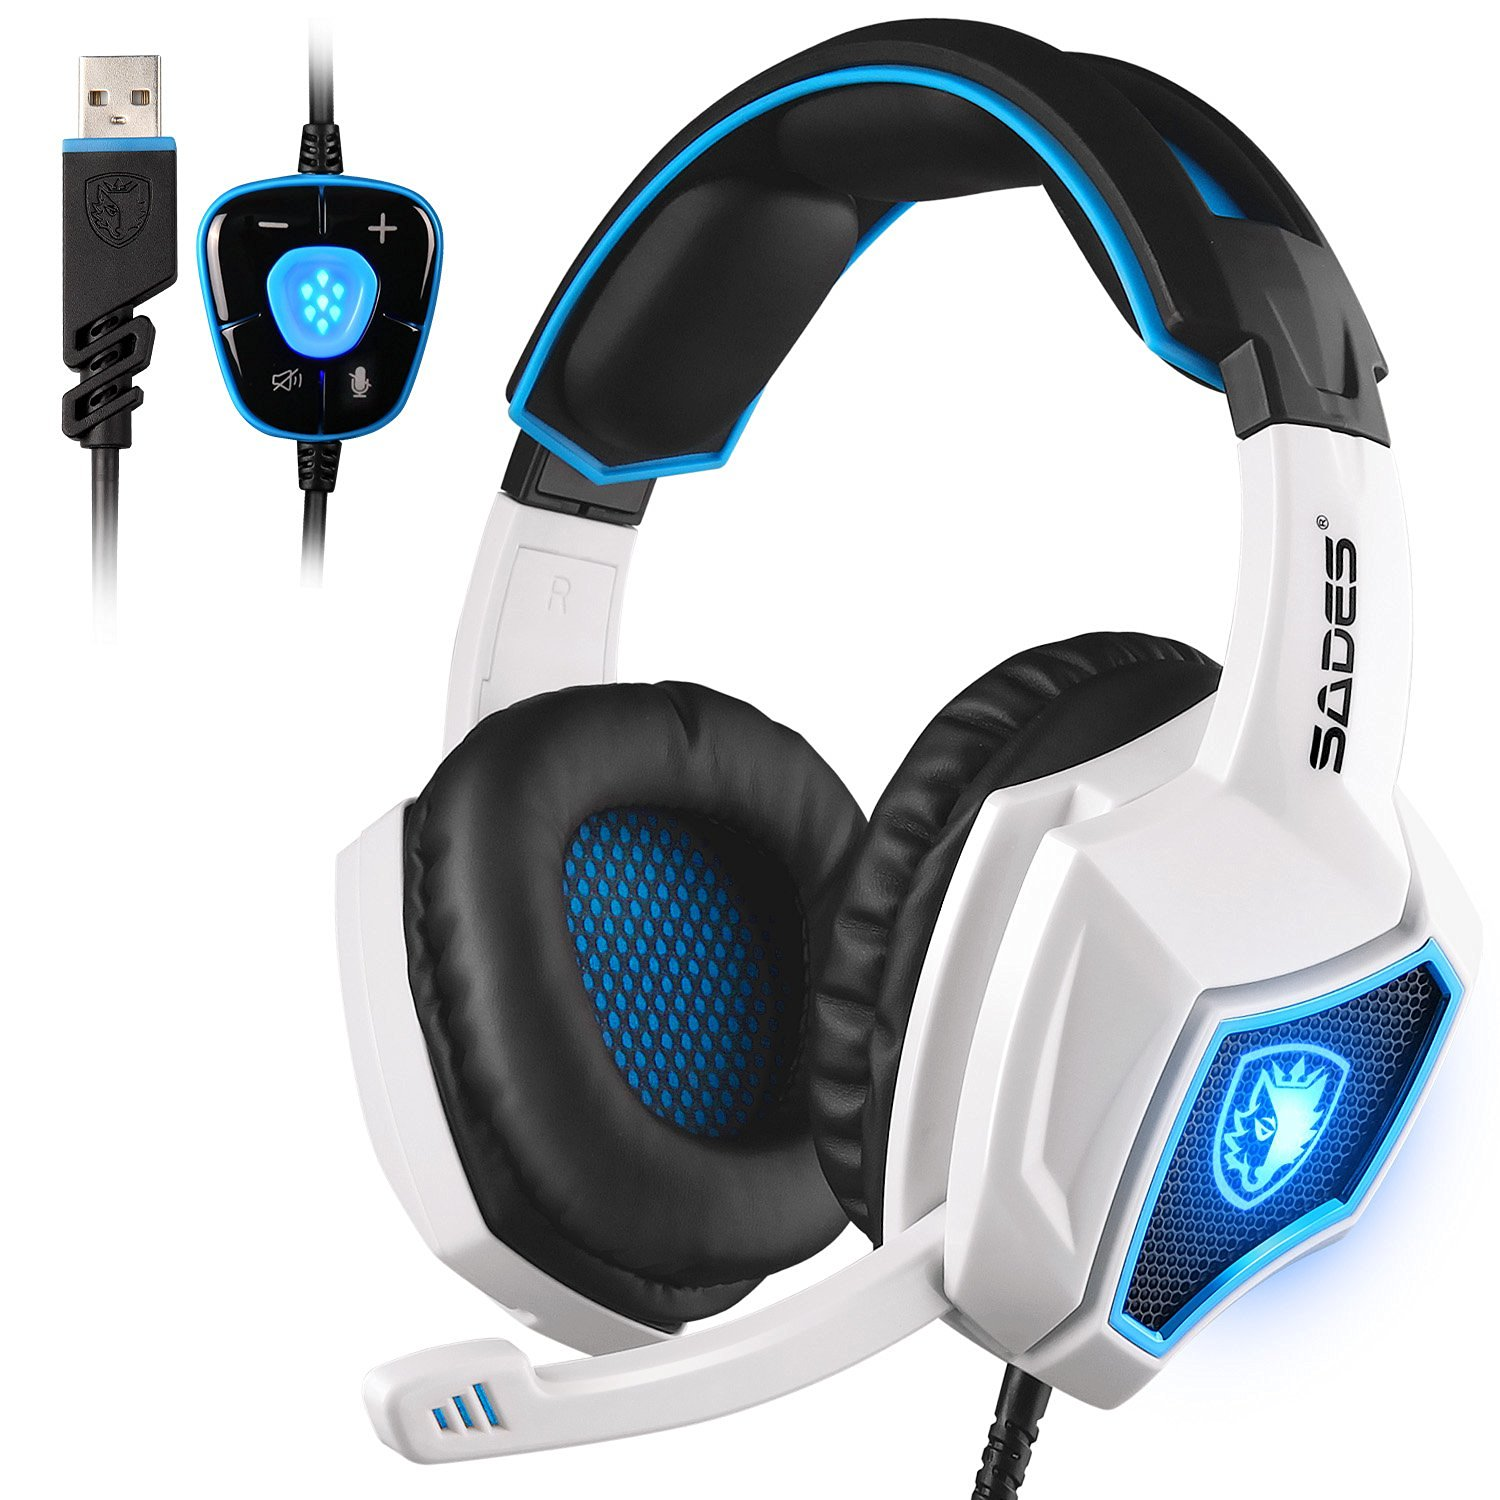 SADES Spirit Wolf 7.1 Surround Sound Stereo USB Gaming Headset with MIC 3xColors | eBay